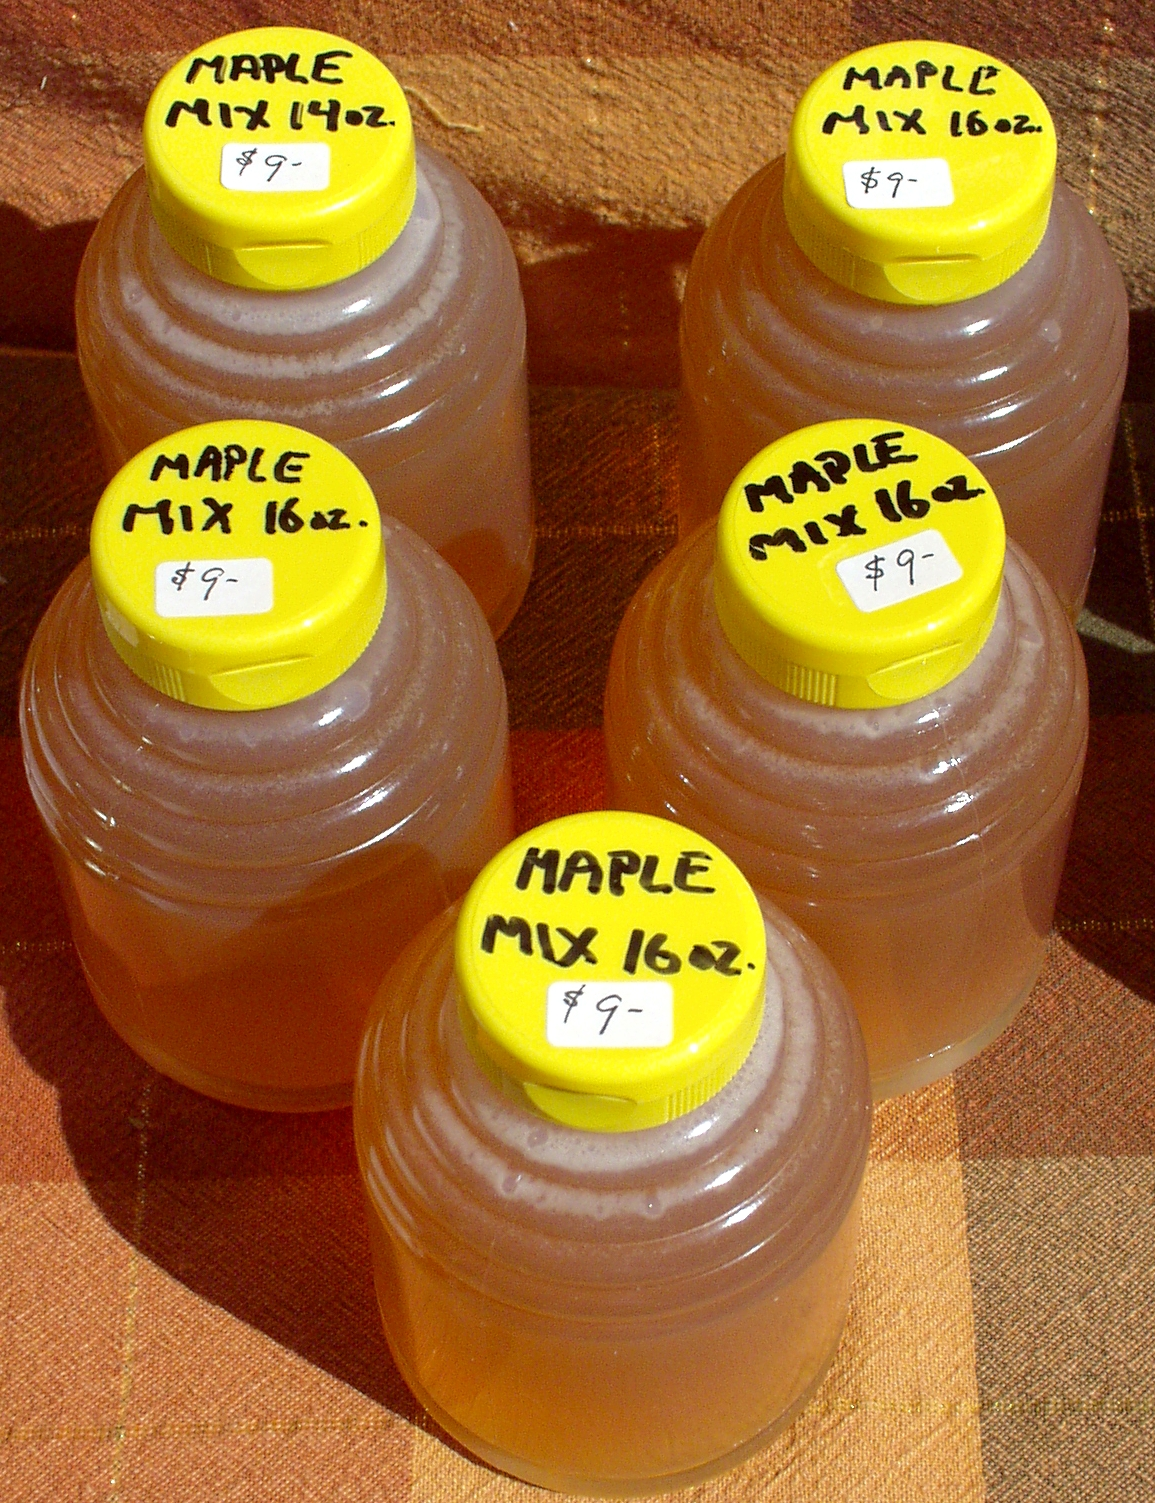 Maple Mix honey from Golden Harvest. Photo copyright 2009 by Zachary D. Lyons.